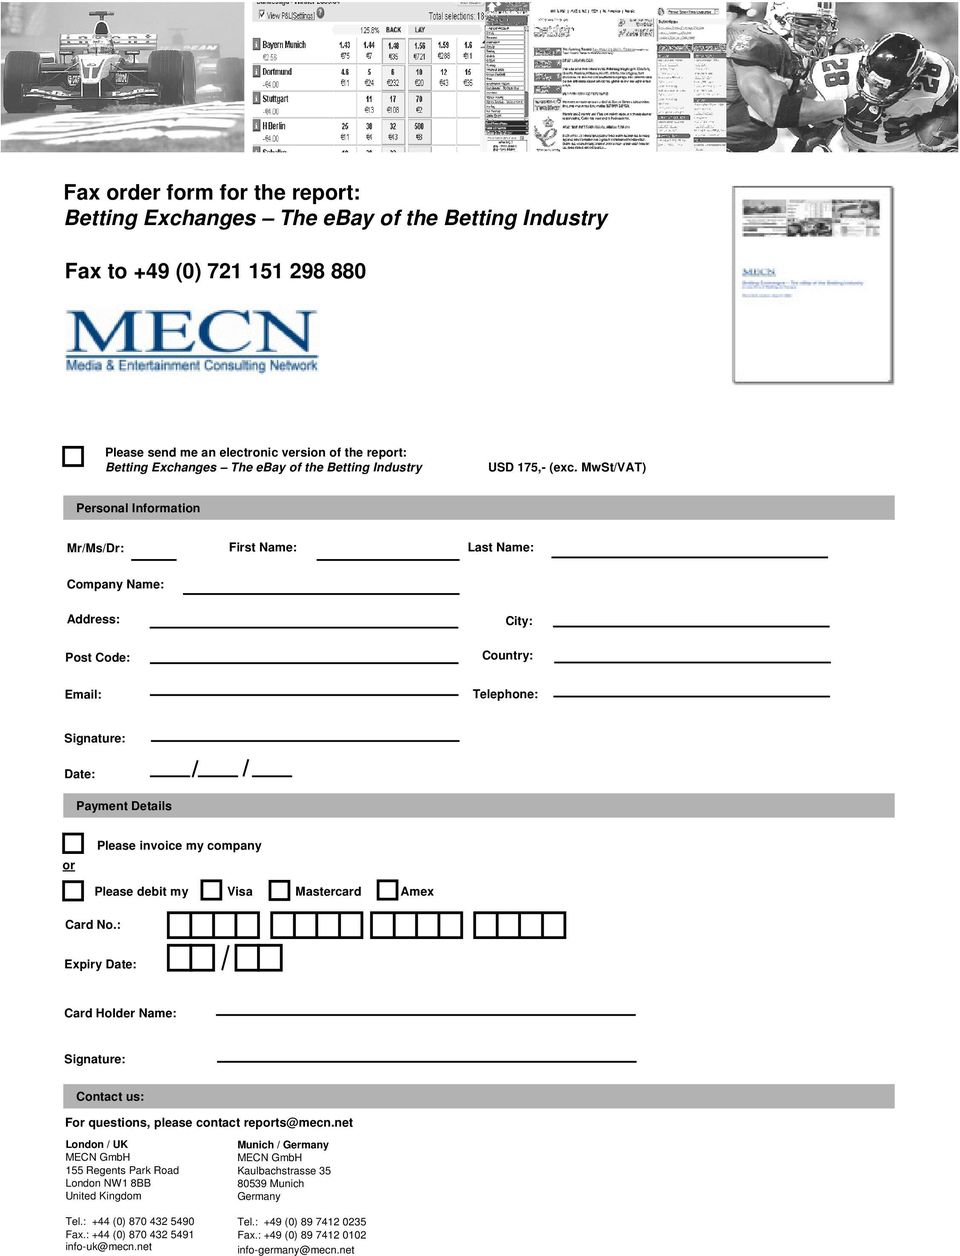 company Card No.: Please debit my Visa Mastercard Amex Expiry Date: Card Holder Name: Signature: Contact us: For questions, please contact reports@mecn.